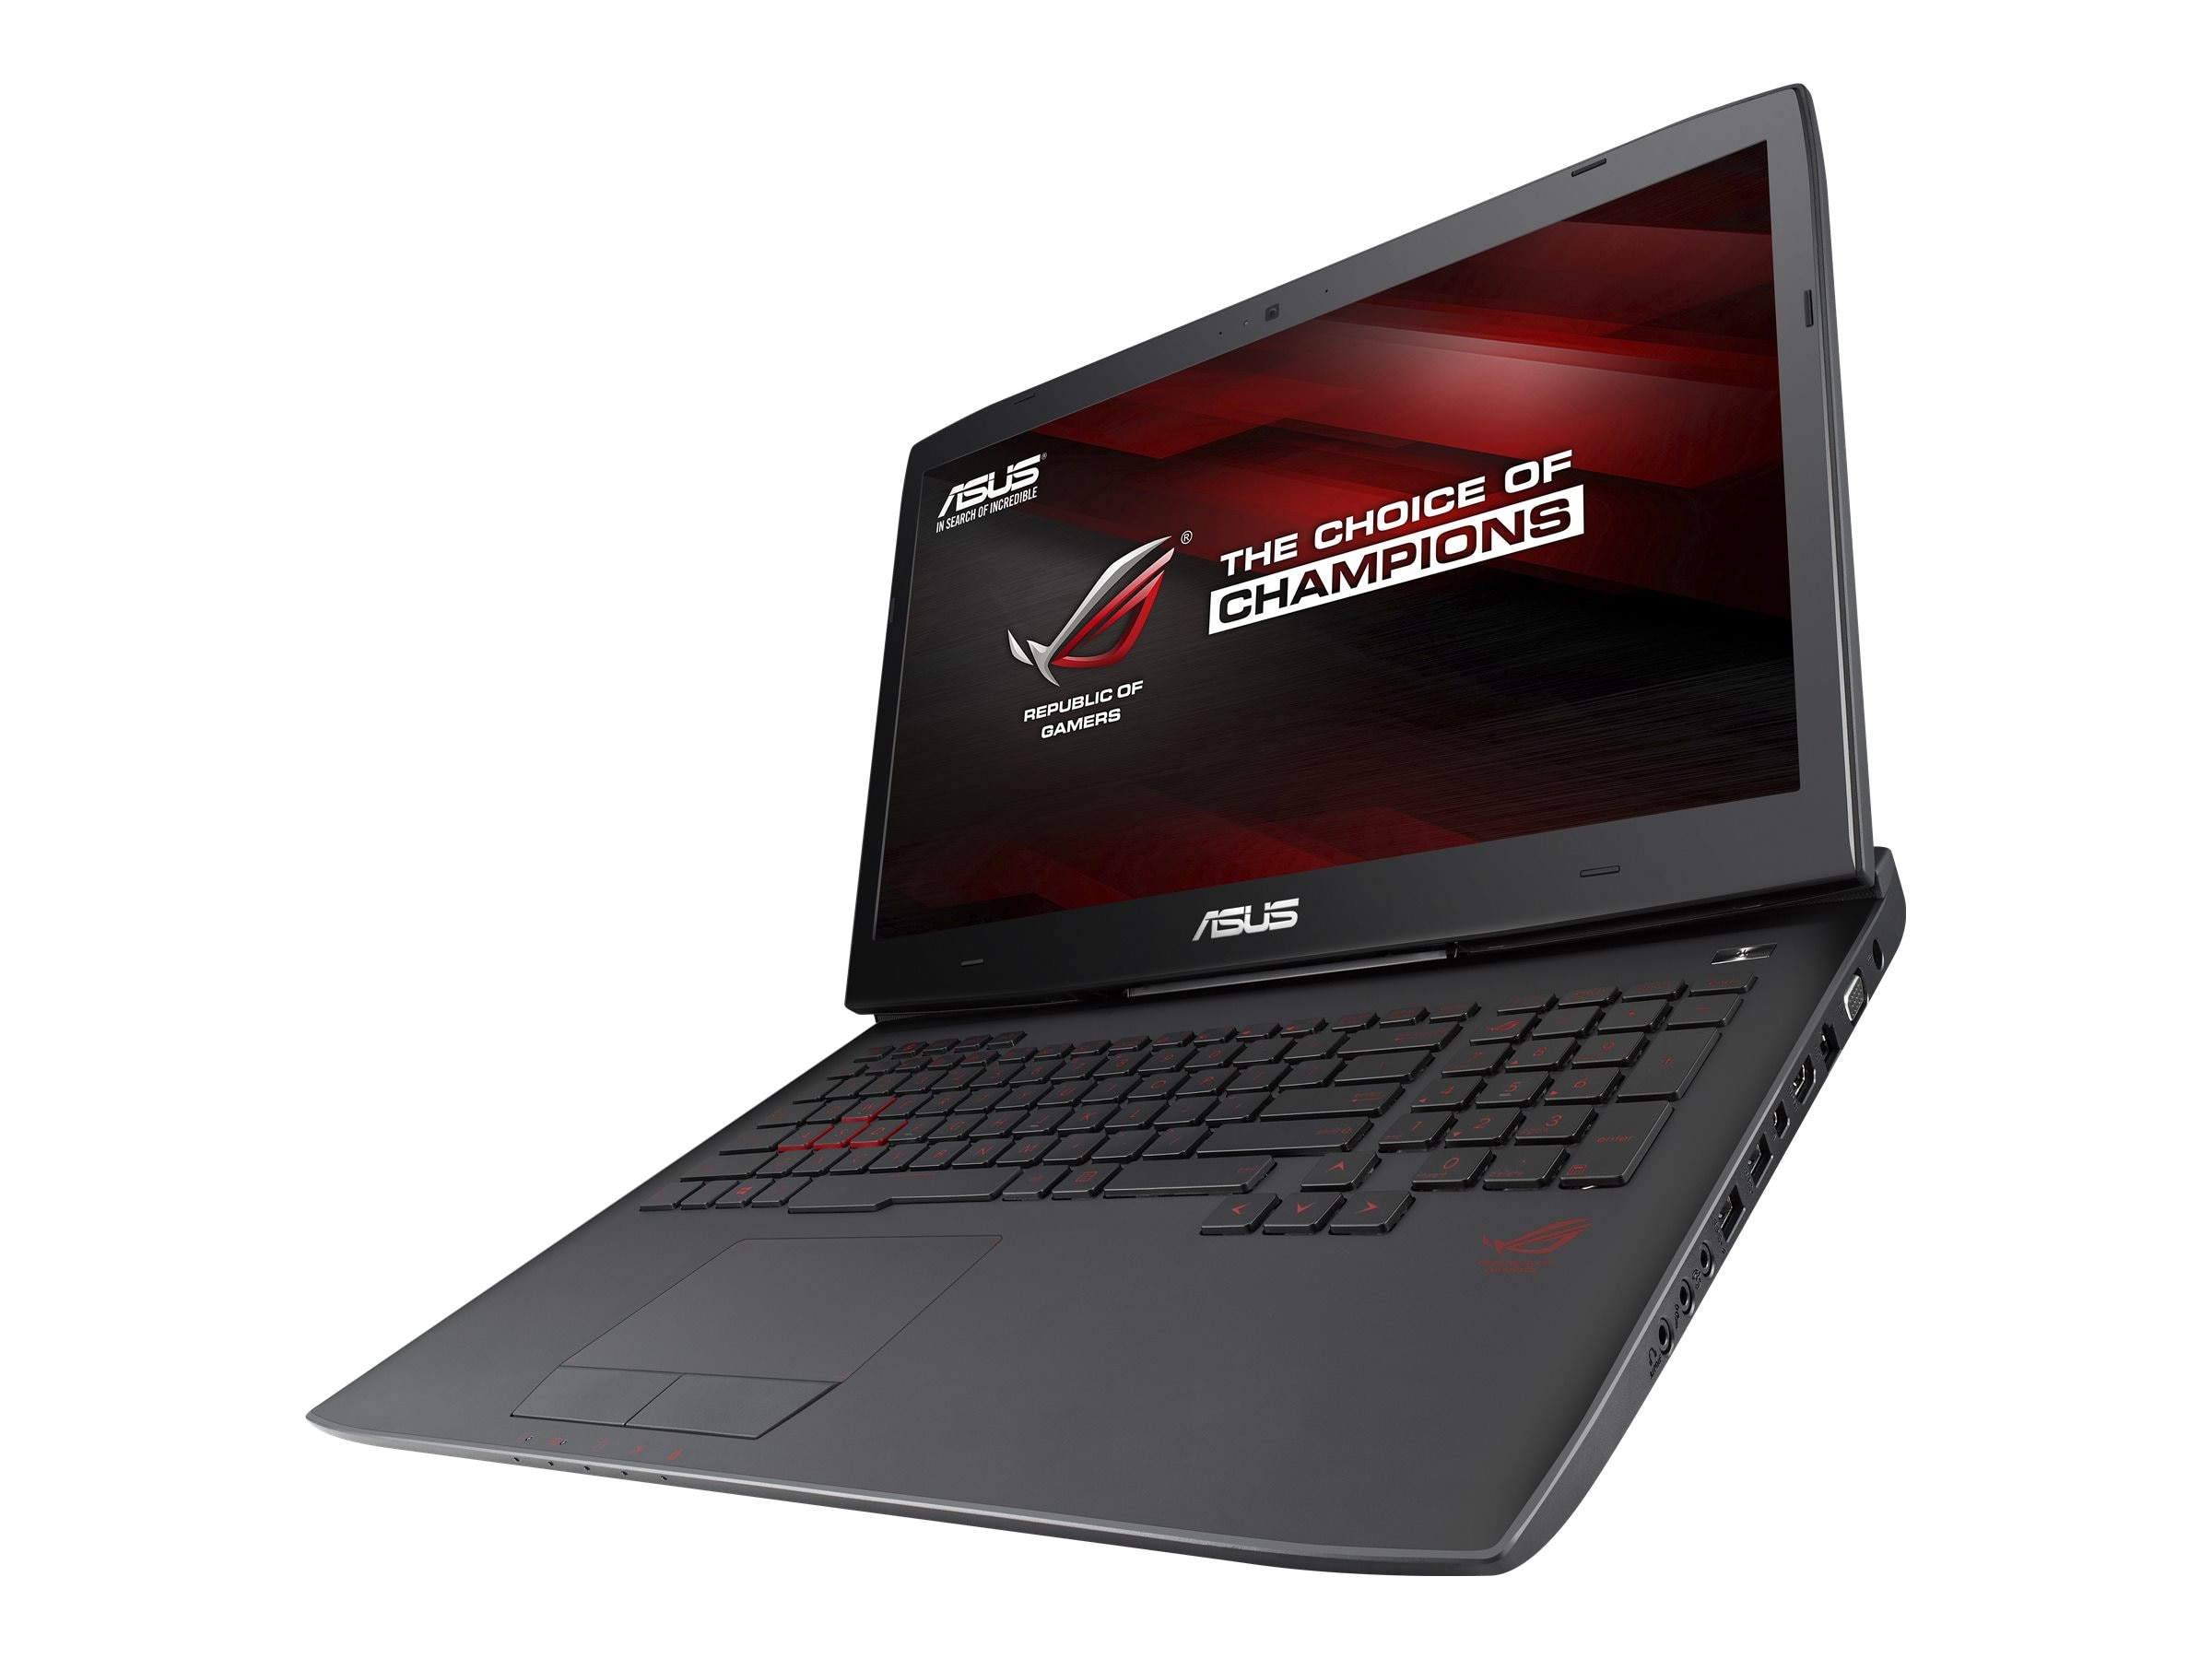 Asus G751JY-VS71(WX) Core i7-4710HQ 2.6GHz 16GB 1TB DVD-RW BT 17.3 W10, G751JY-VS71(WX)